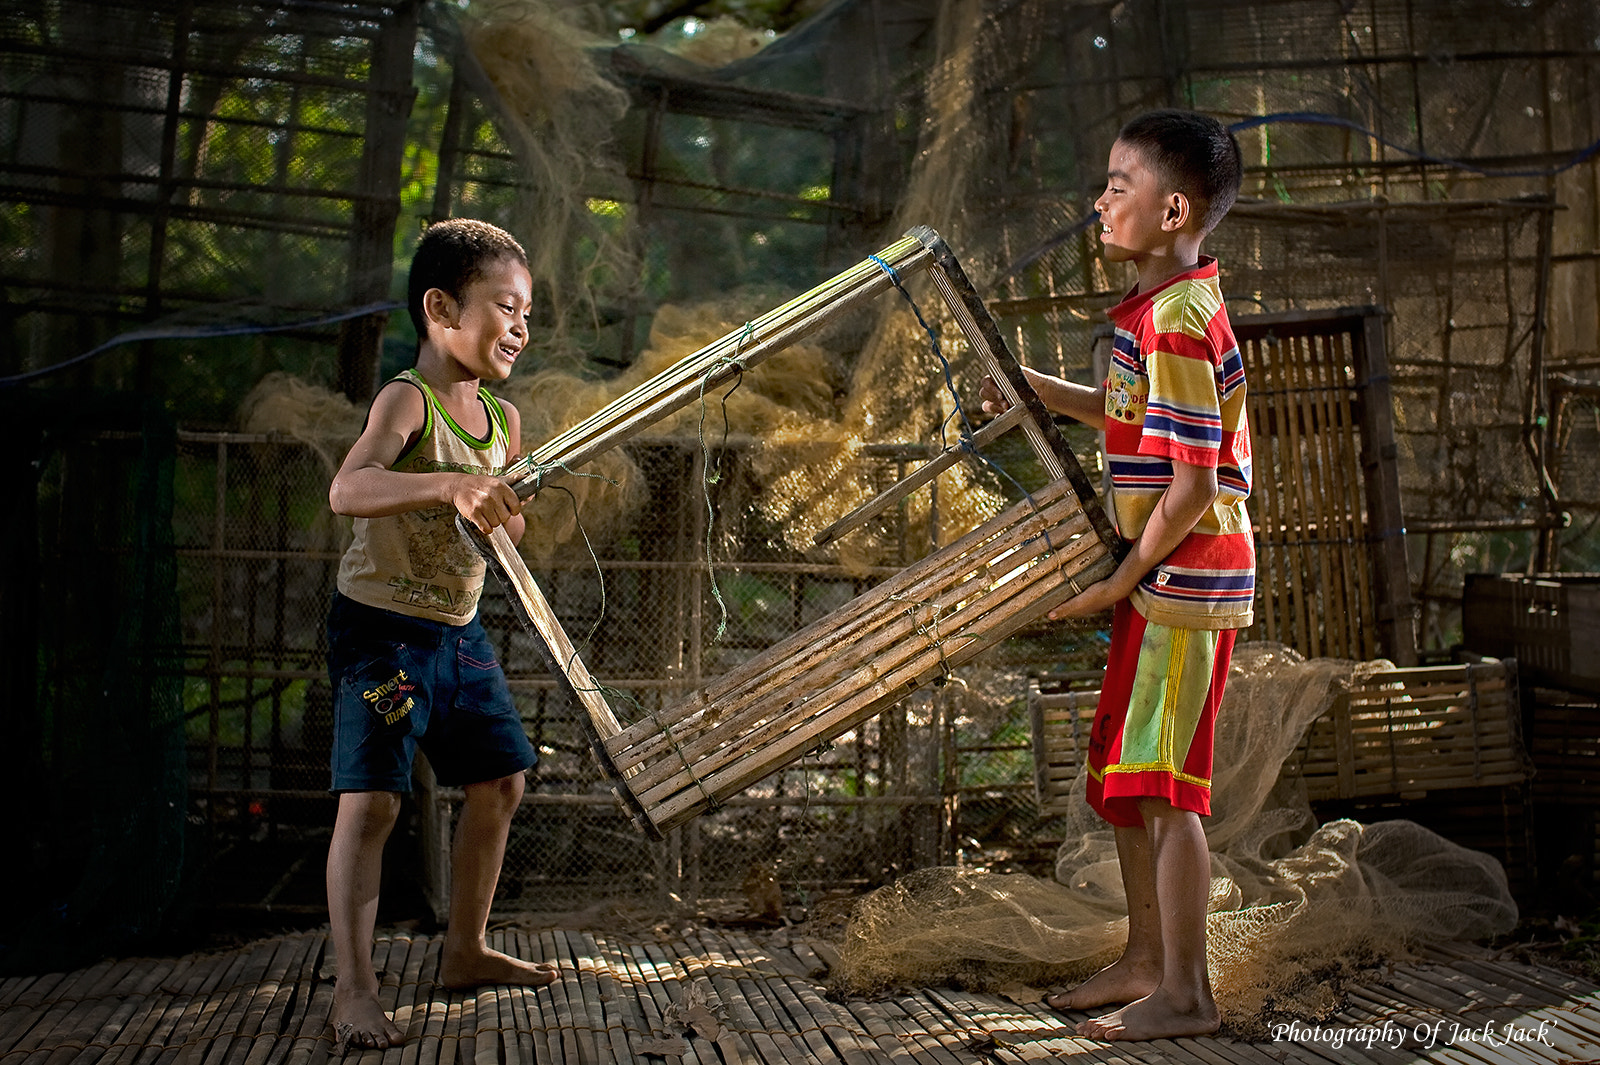 Photograph 'Children's Play' by HENDRIK PRIYANTO on 500px